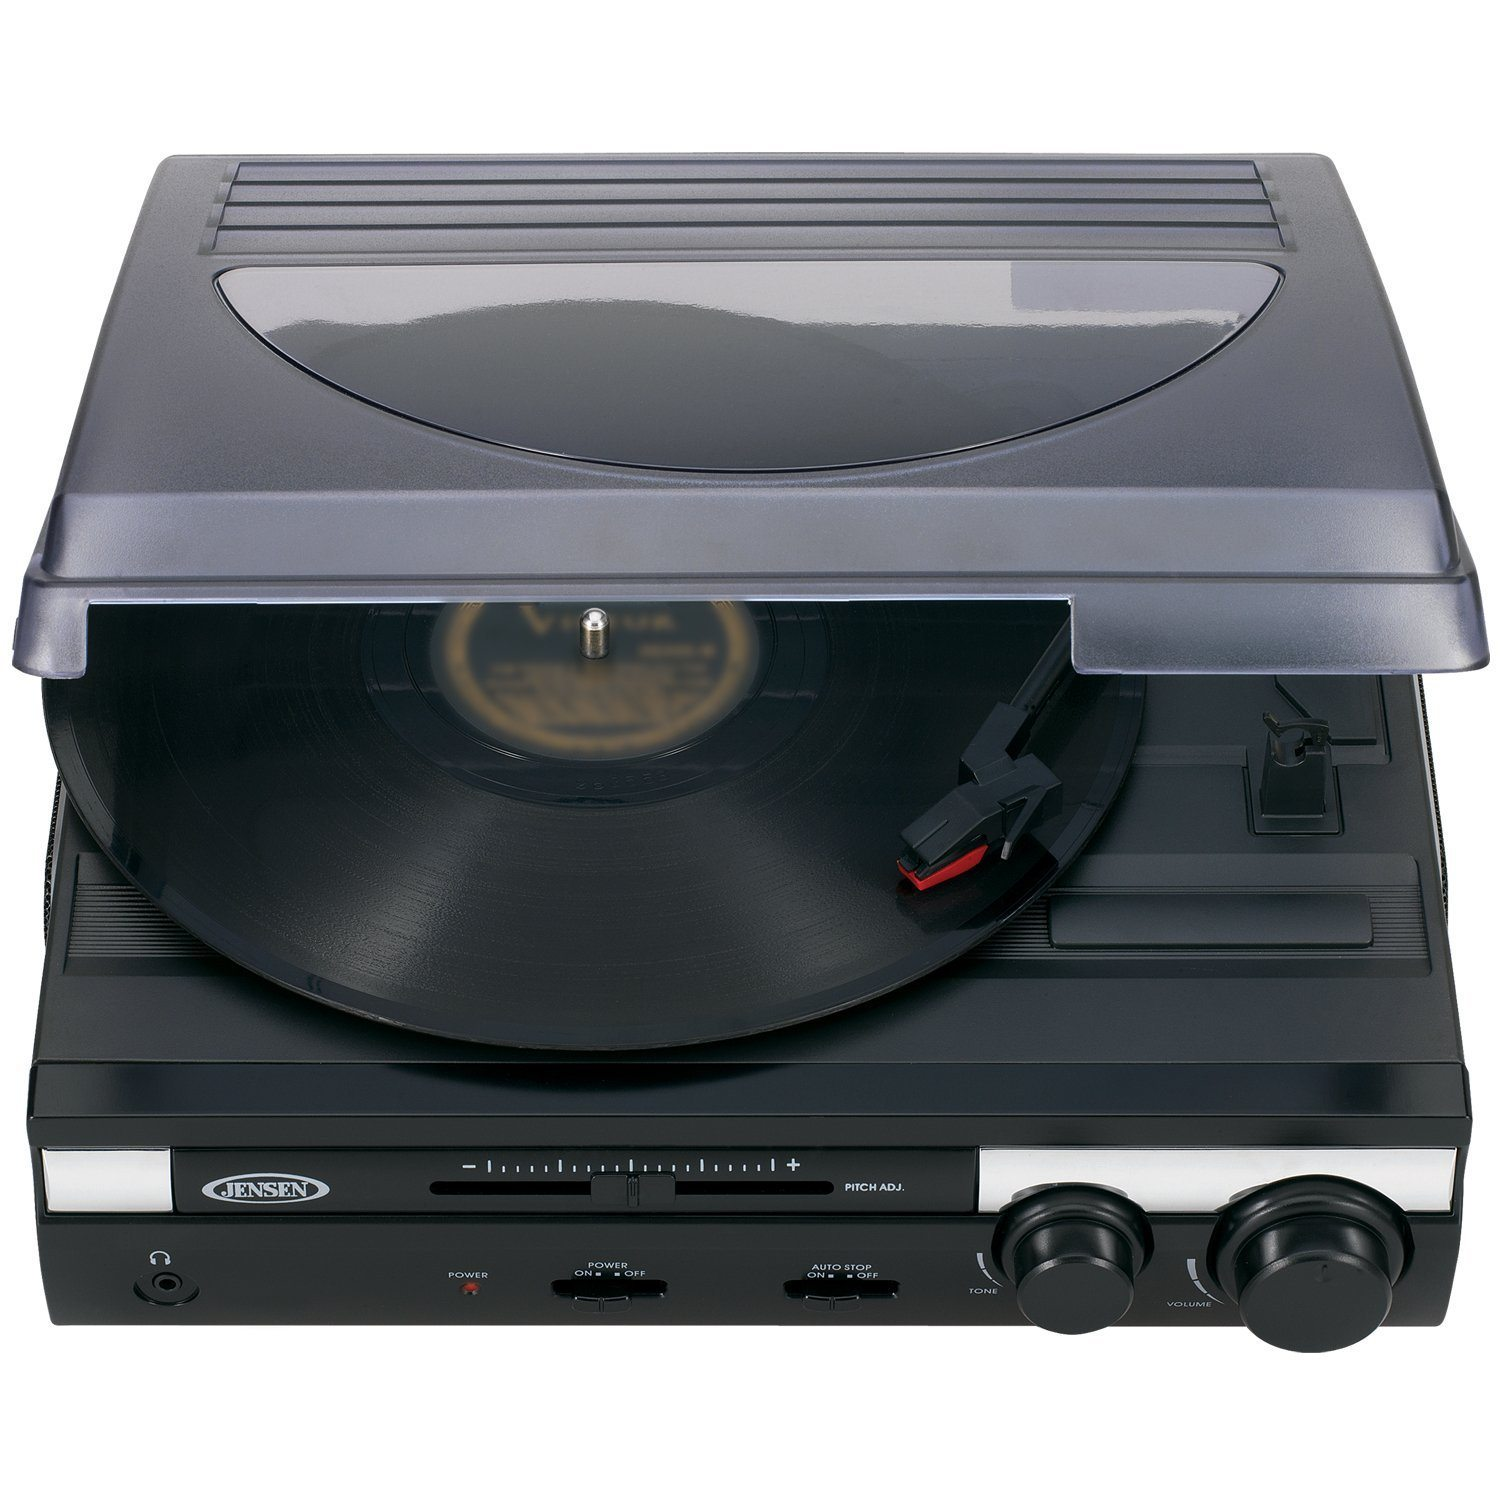 Jensen JTA-230 record player.